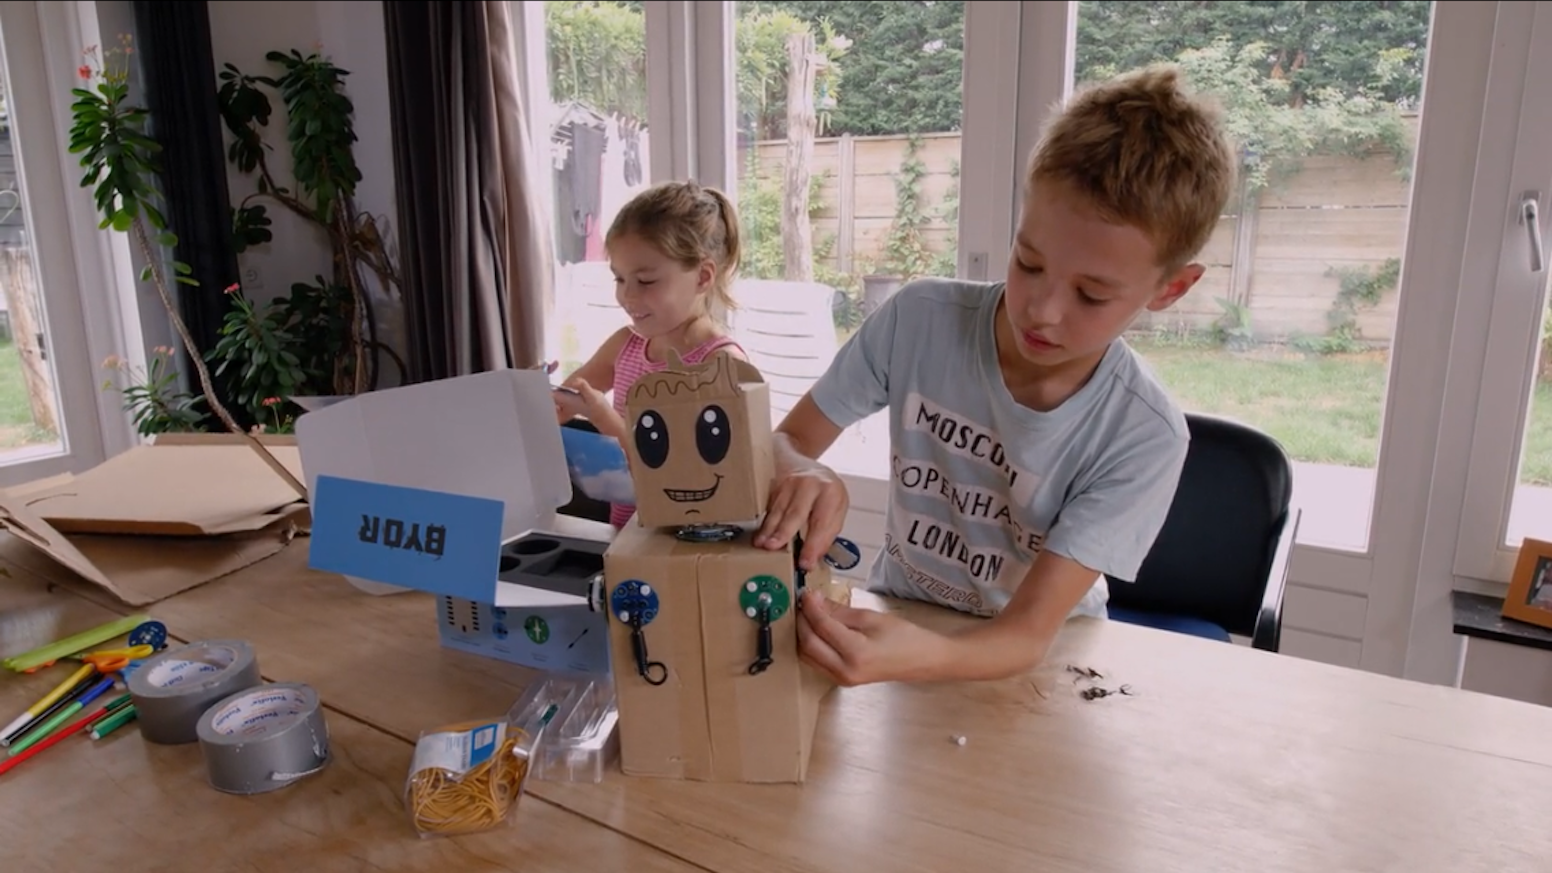 Build your own thought up robot with BYOR! Arts and crafts meet electronics in the most versatile and user-friendly way!